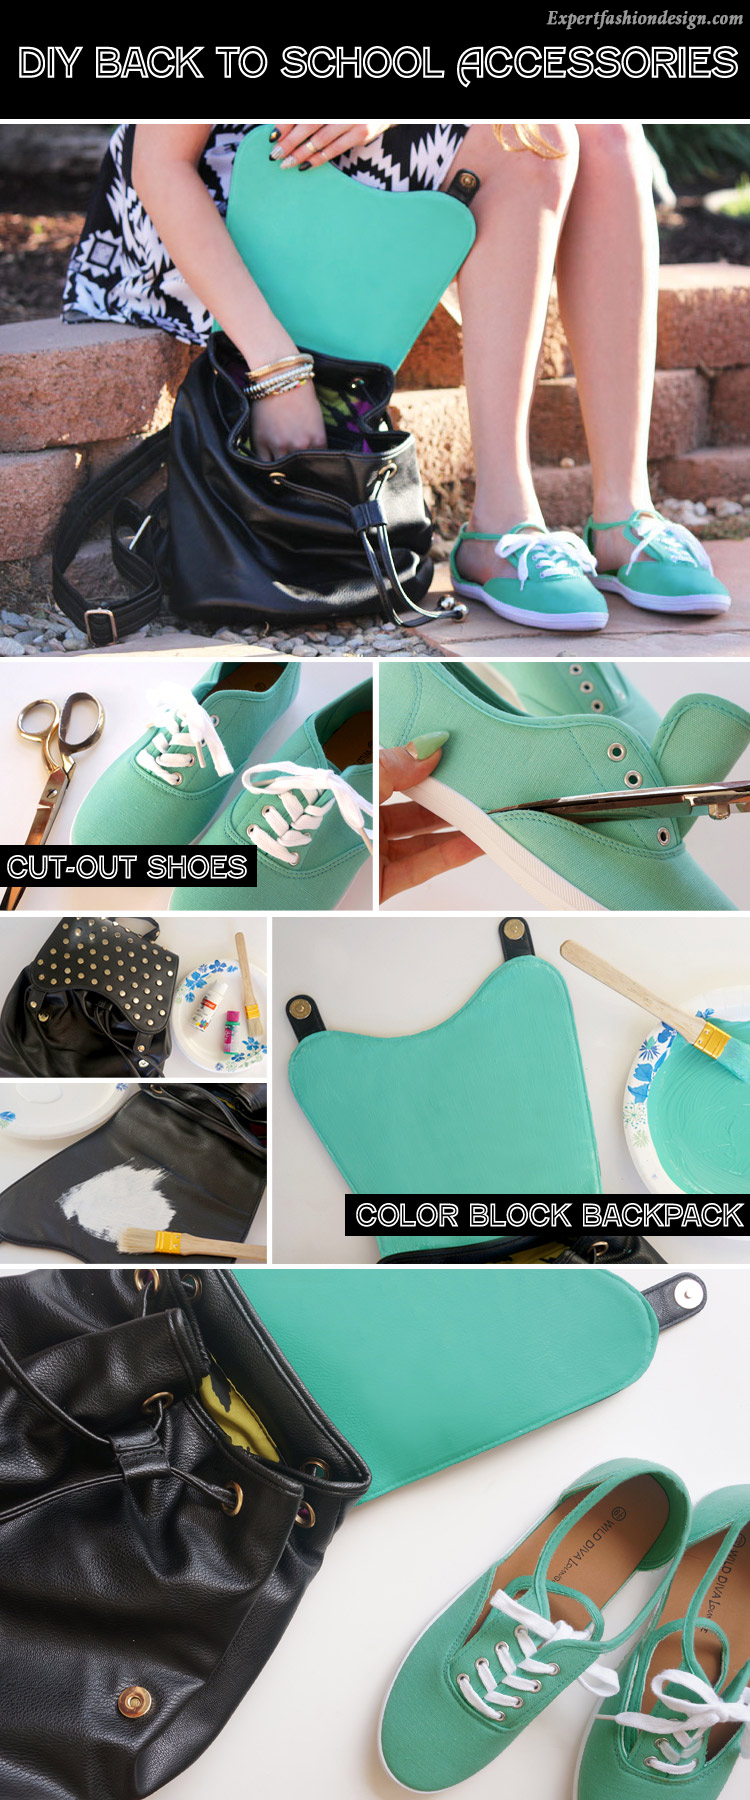 Diy projects for every girl to get fashionable ideas 12 dresses diy projects for every girl to get fashionable ideas 12 dresses solutioingenieria Choice Image